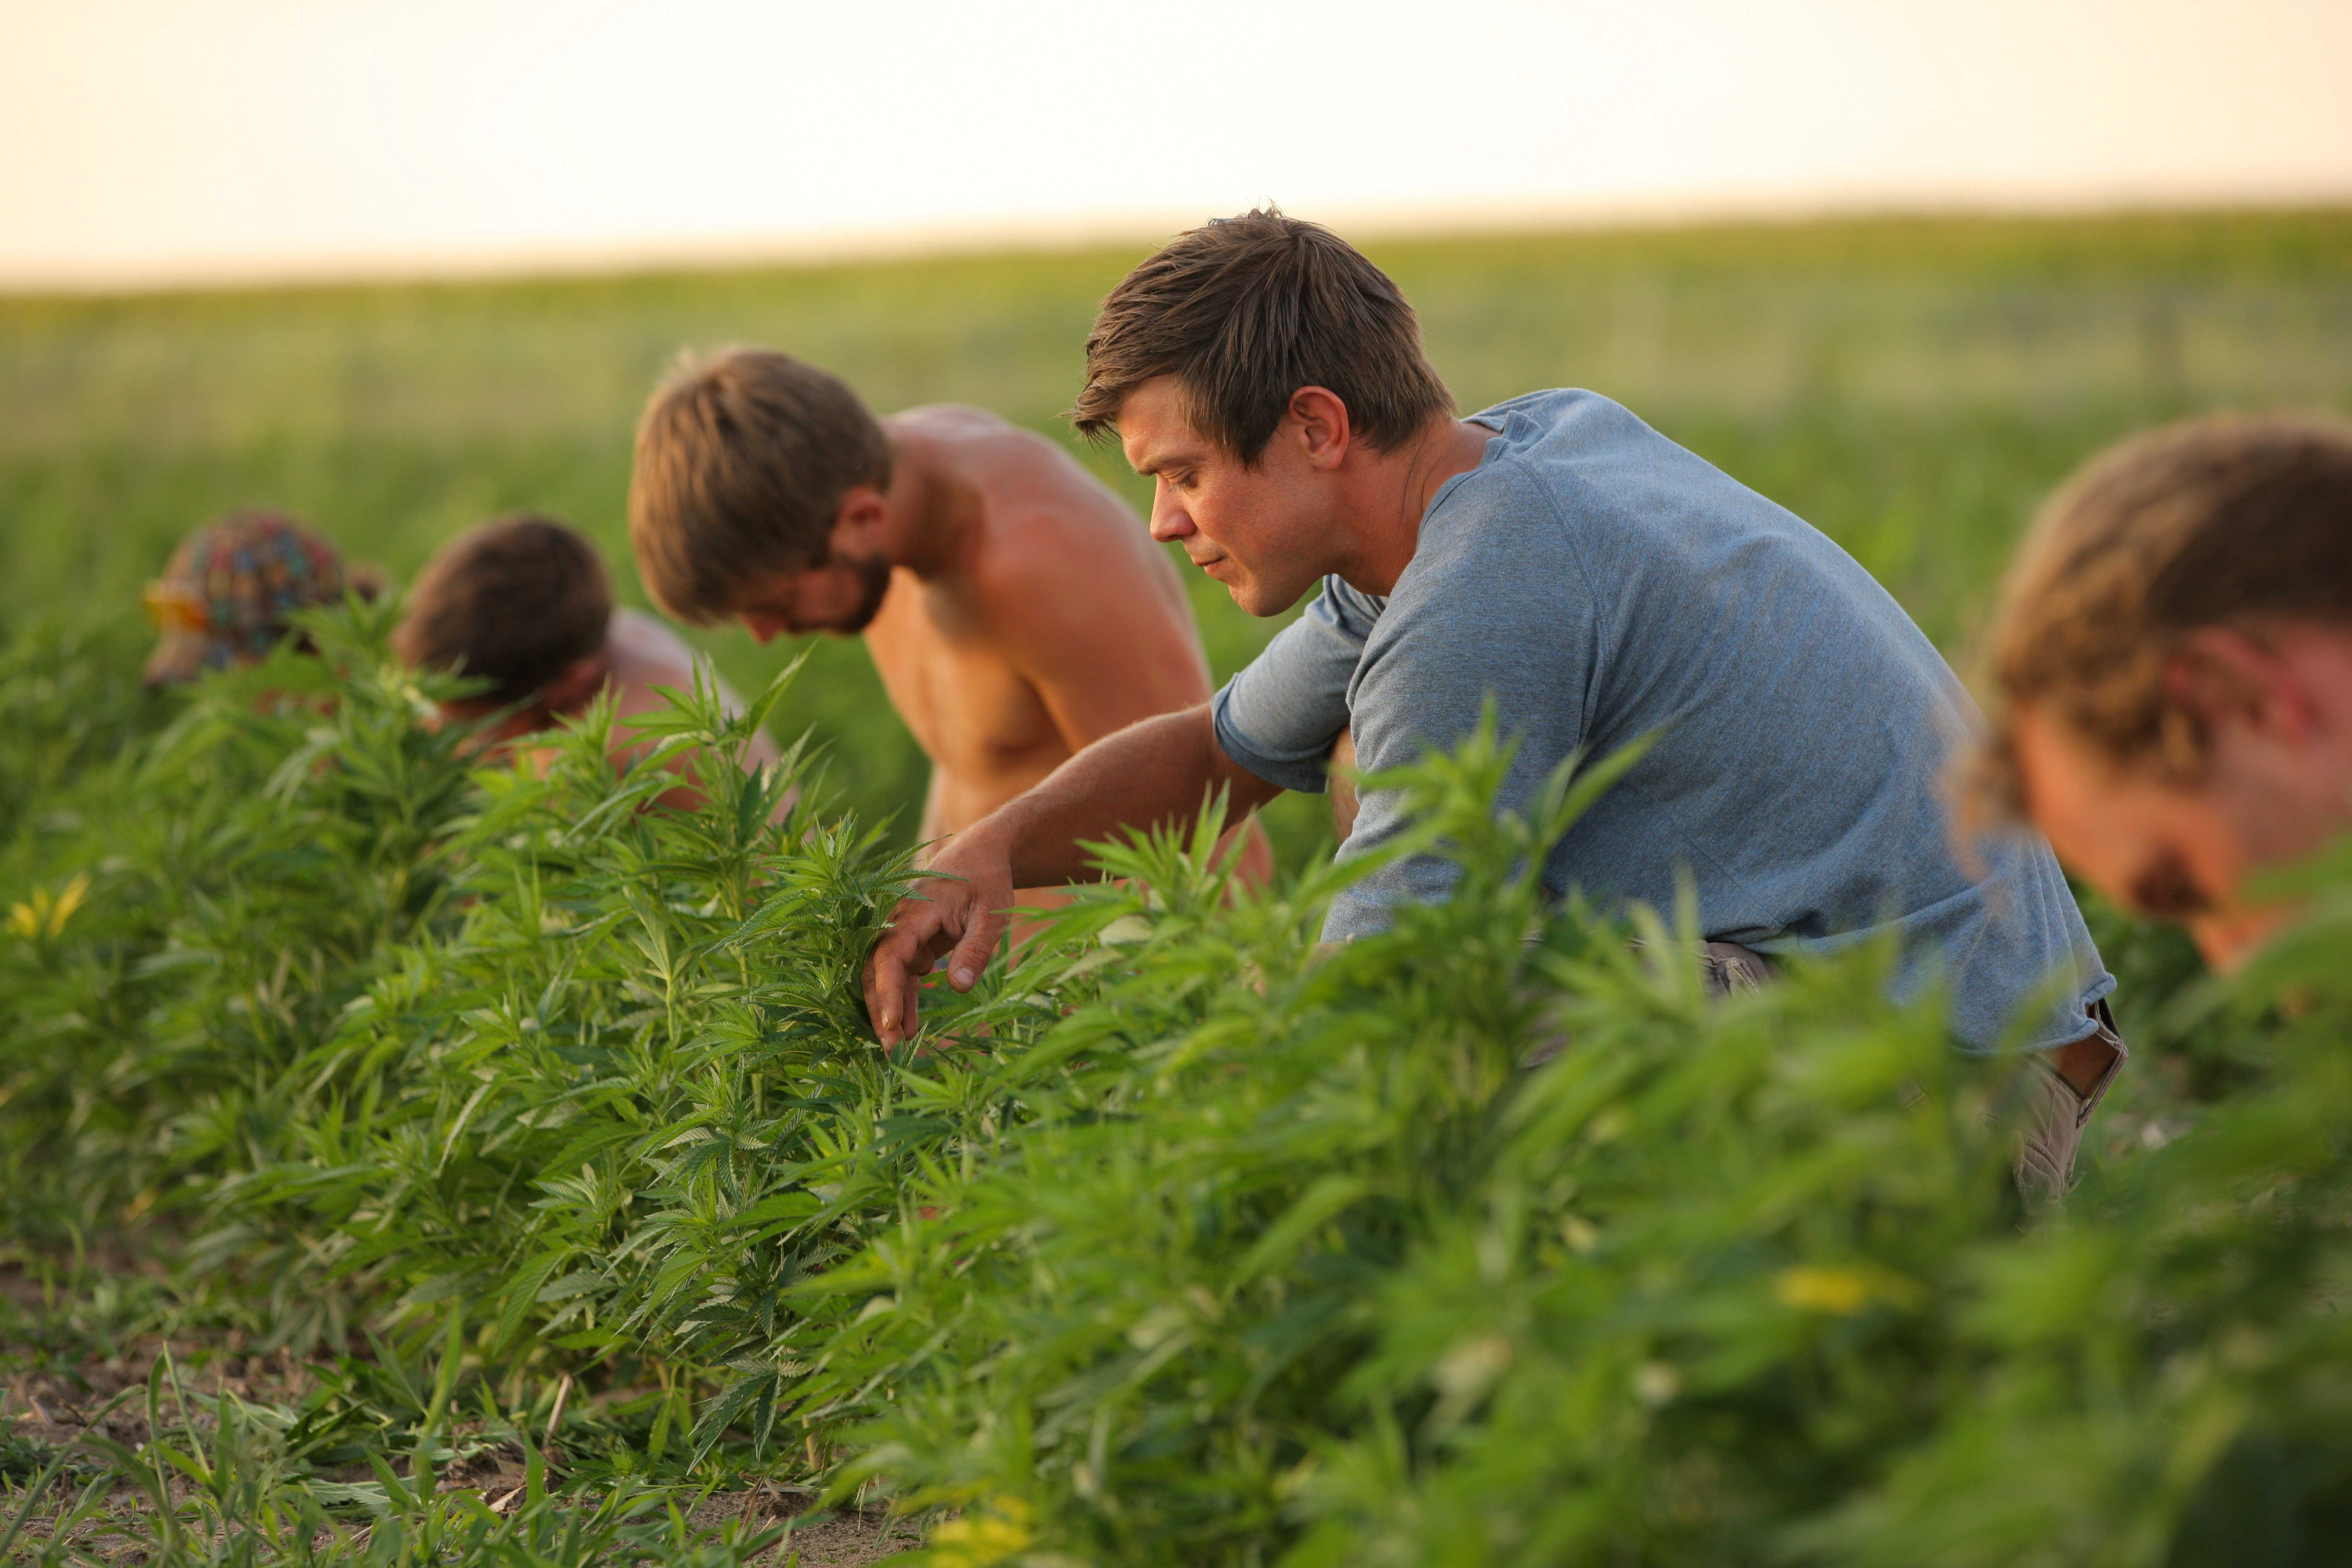 Jordan Stanley and others prune hemp plants growing on their family''s farm outside Wray, Colo., on July 31, 2014